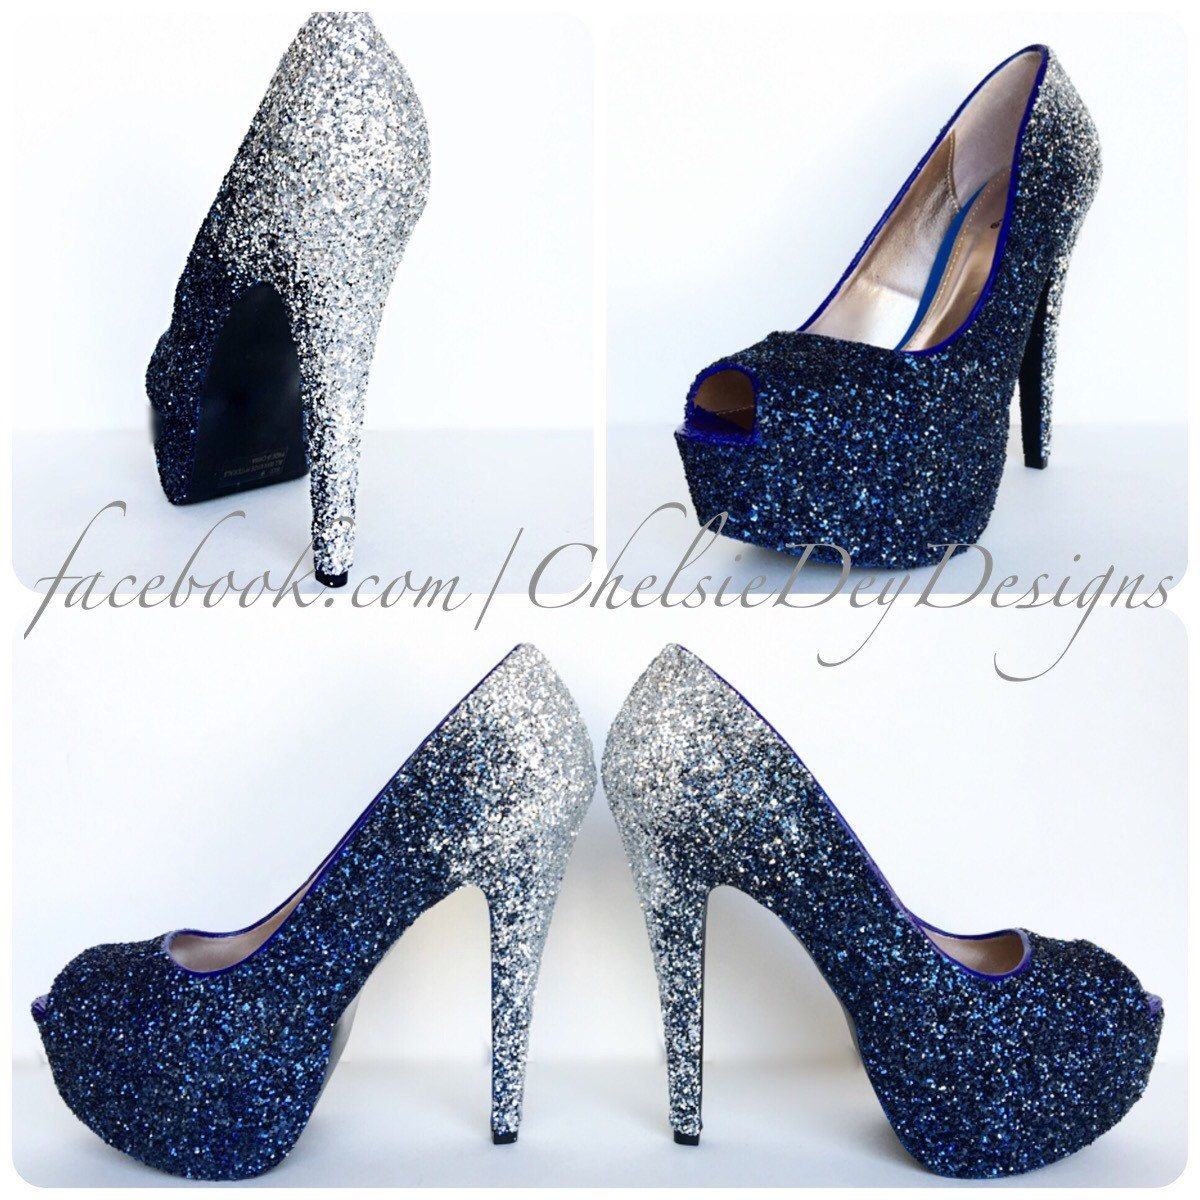 ac273c9d5d84 Glitter High Heels - Silver Navy Blue Pumps - Ombre Fade Glitter Peep Toe  Heels - Open Toe Shoes - Something Blue Wedding Shoes - pinned by  pin4etsy.com